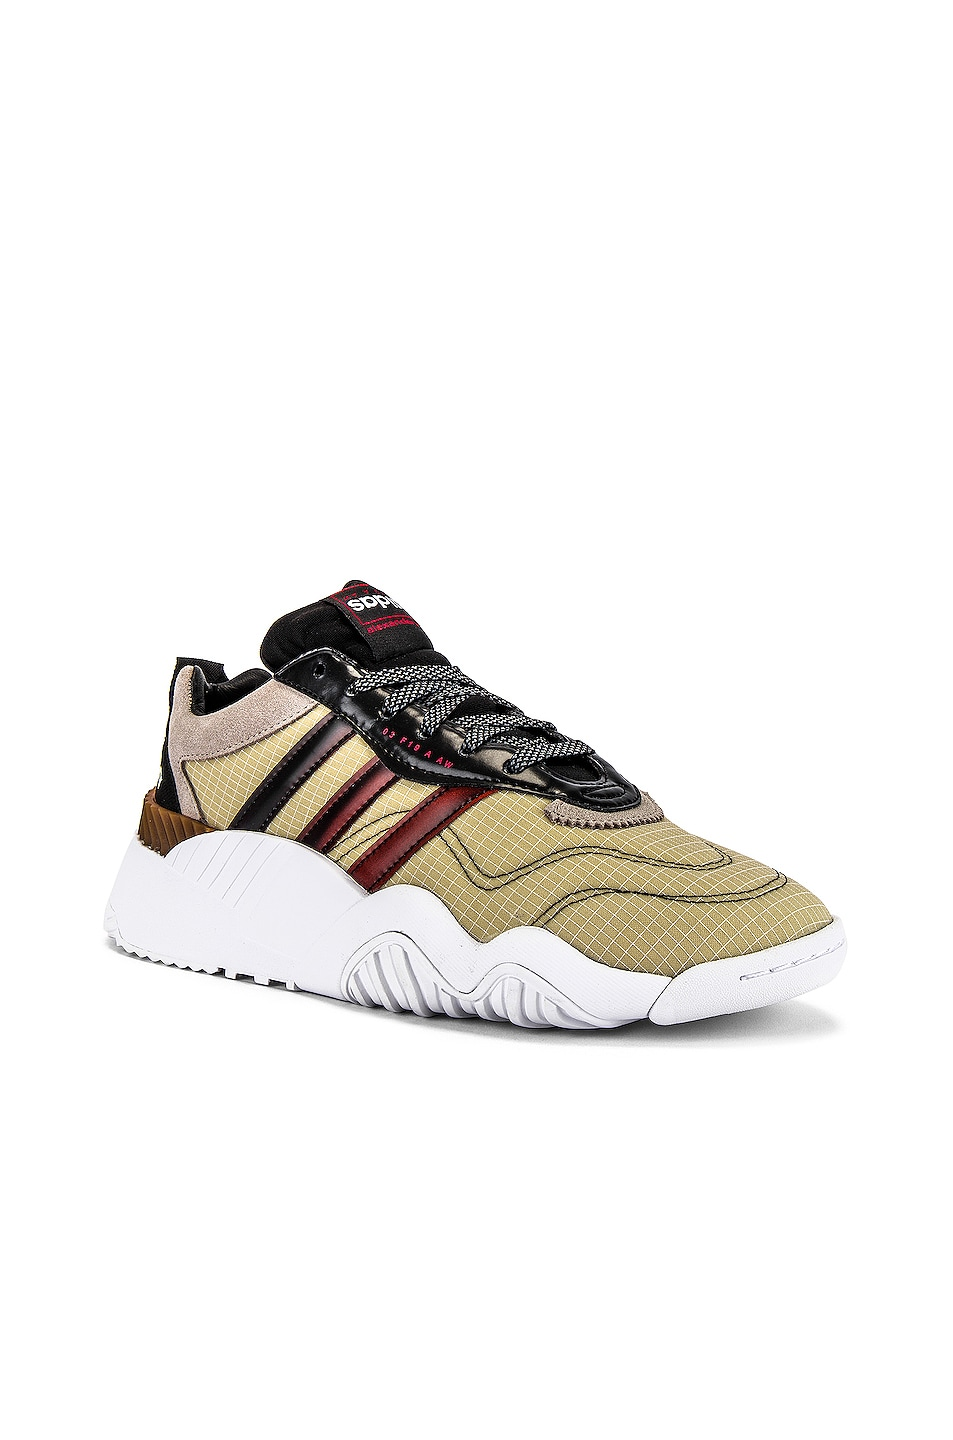 Image 1 of adidas by Alexander Wang Turnout Trainer Sneaker in Core Black & Light Brown & Bright Red